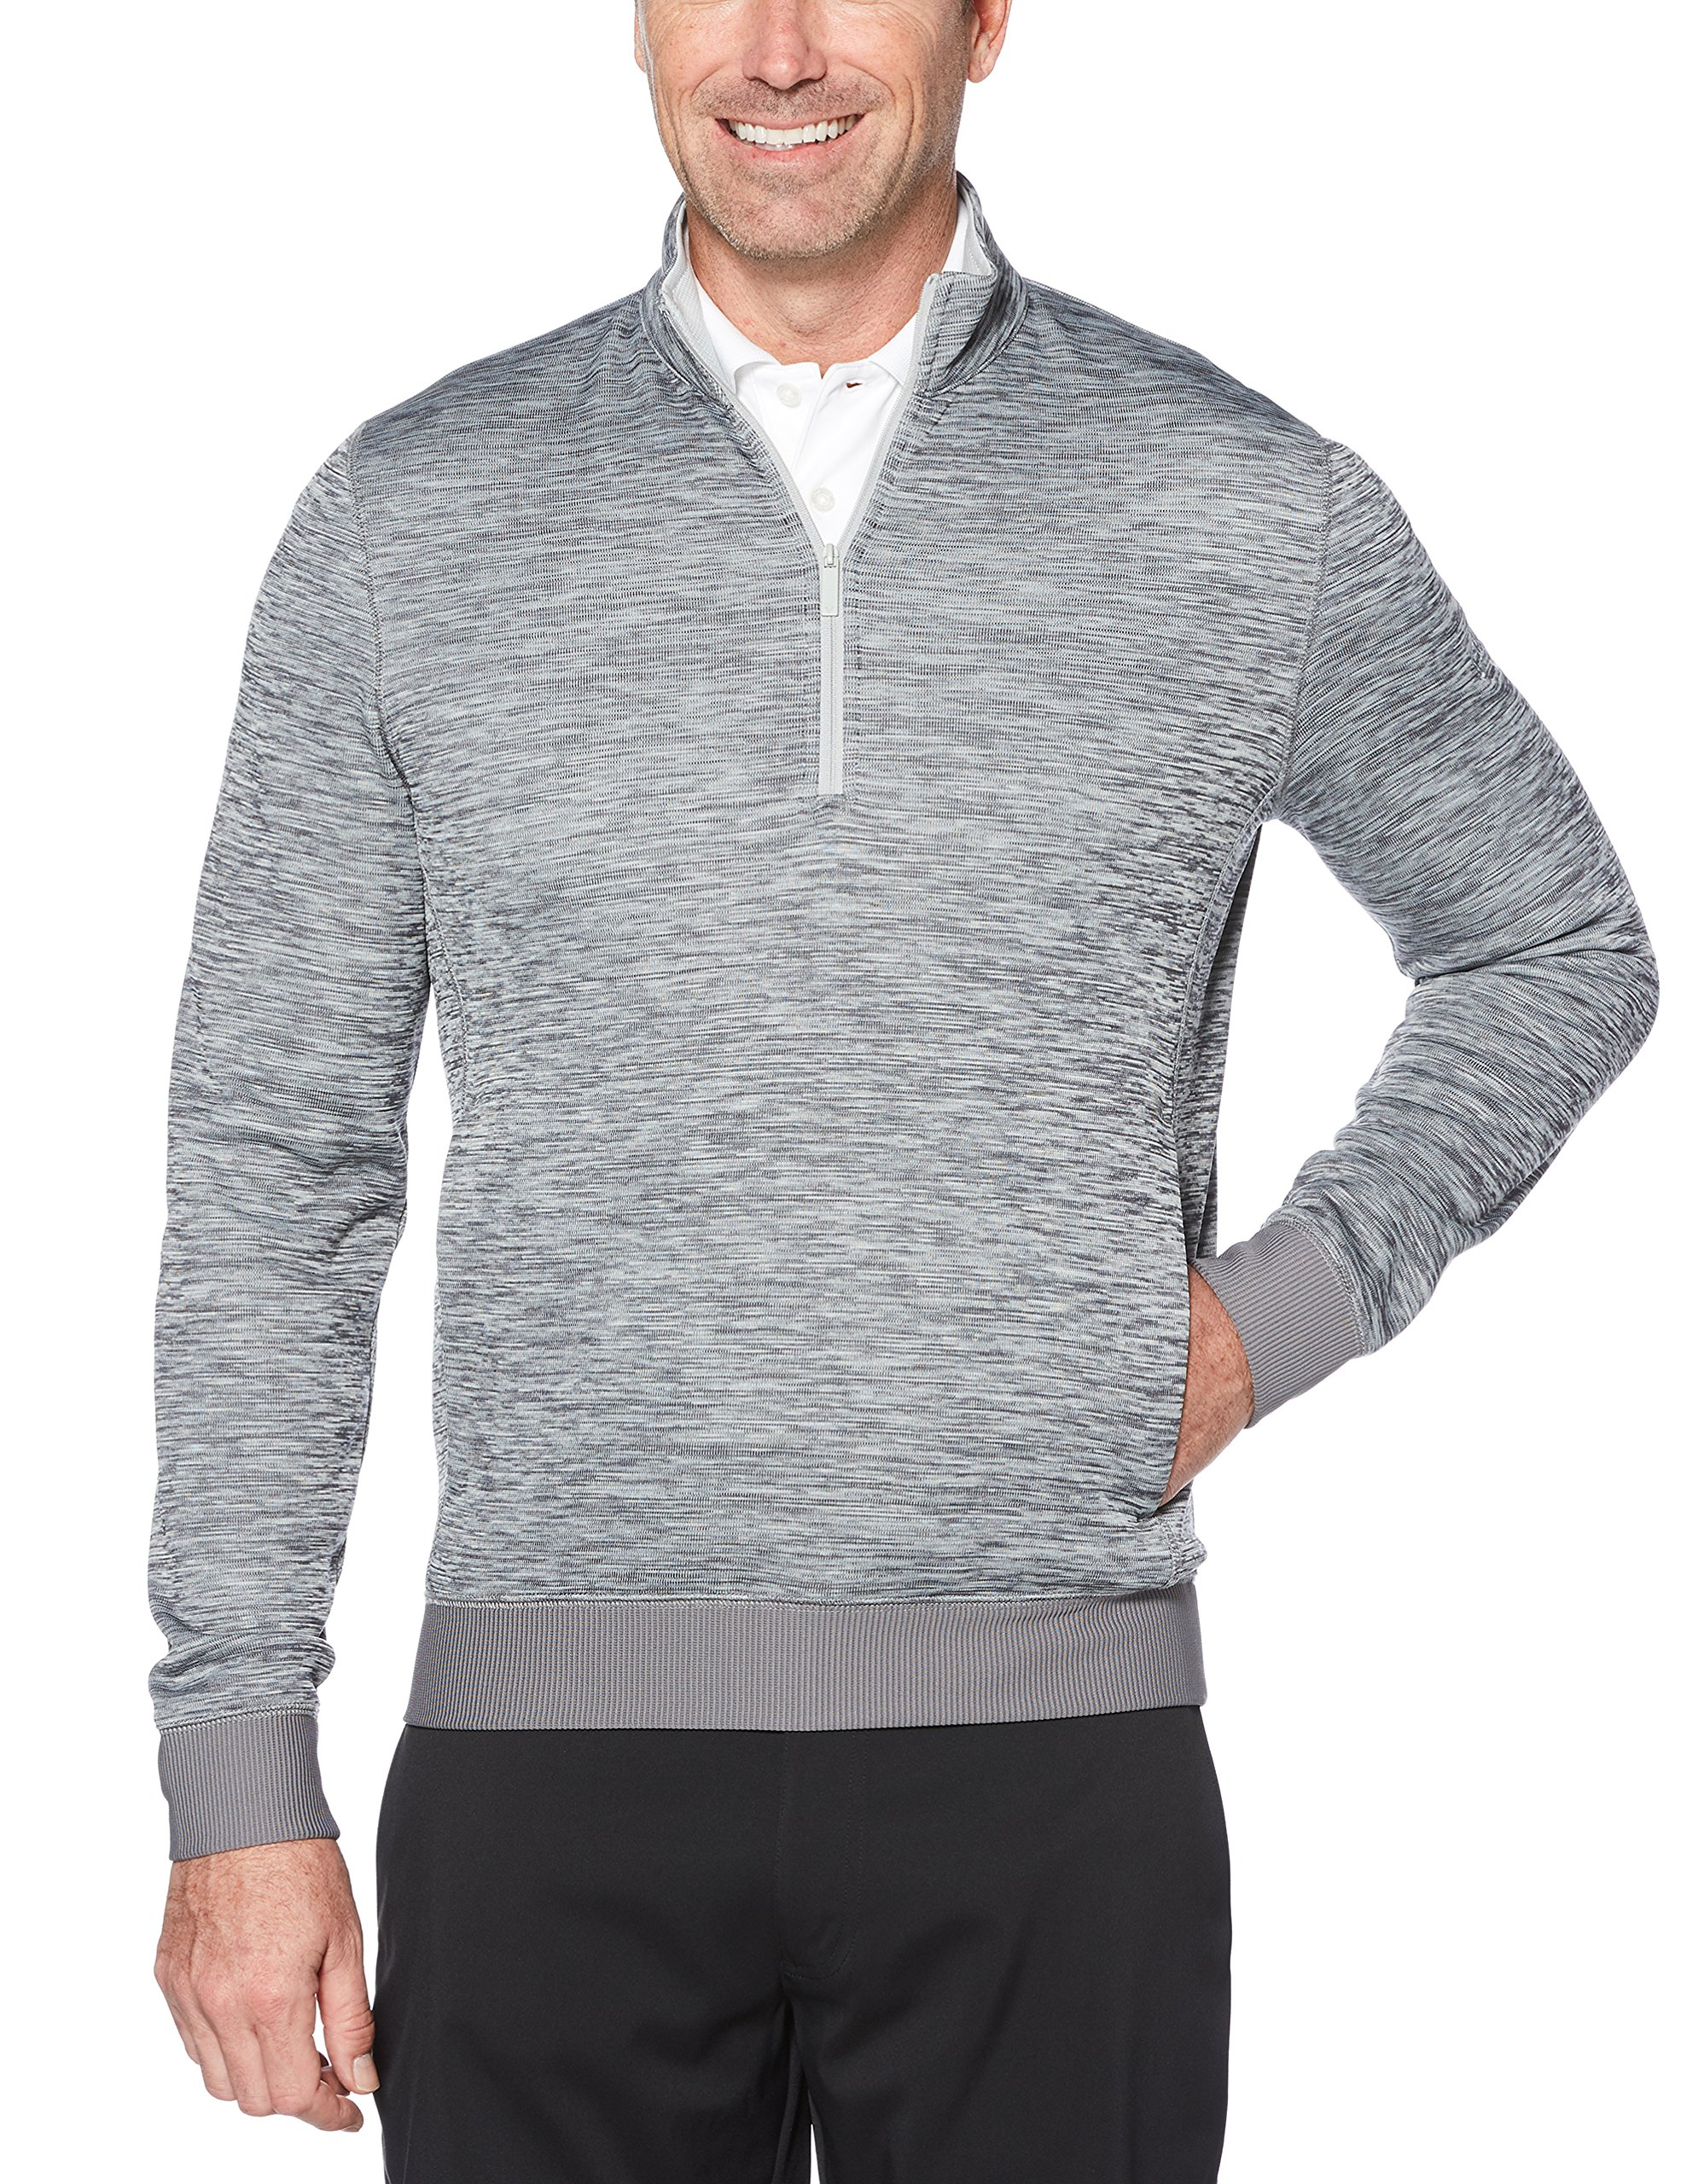 Callaway Men's Water Repellent 1/4 Zip Golf Pullover, Medium Grey Heather, Medium by Callaway